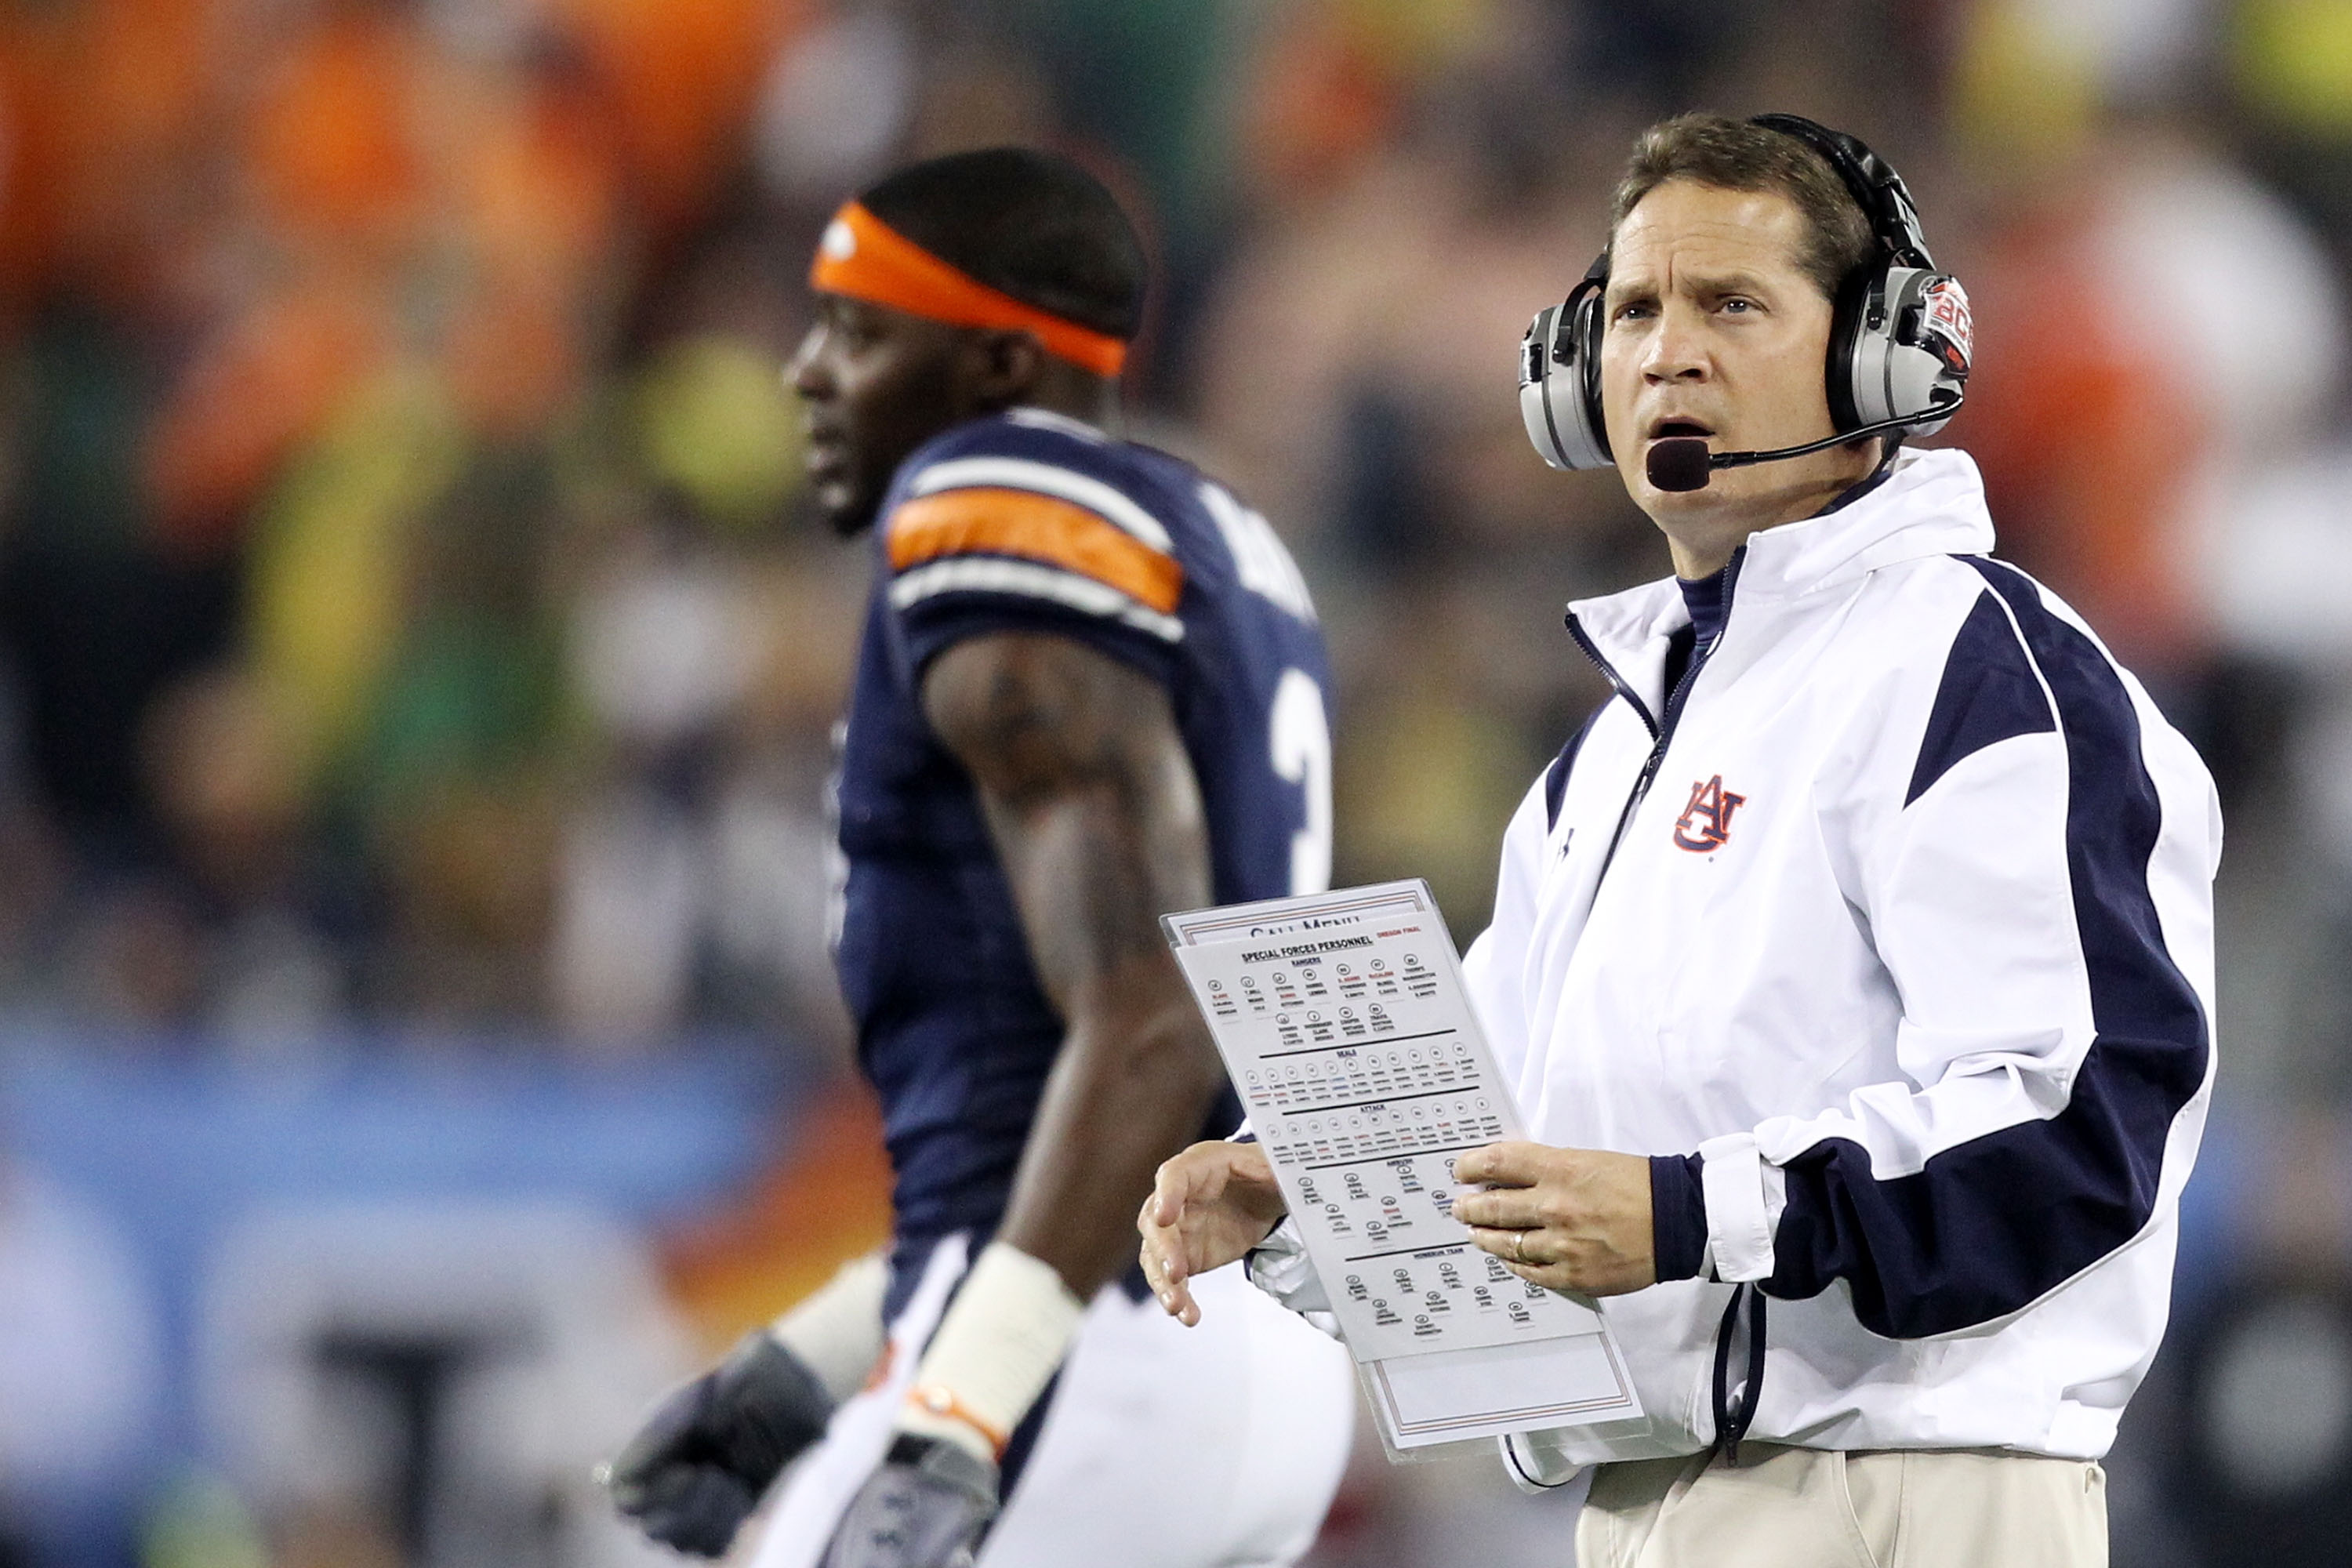 GLENDALE, AZ - JANUARY 10:  Head coach Gene Chizik of the Auburn Tigers looks  on from the sideline against the Oregon Ducks during the Tostitos BCS National Championship Game at University of Phoenix Stadium on January 10, 2011 in Glendale, Arizona.  (Ph